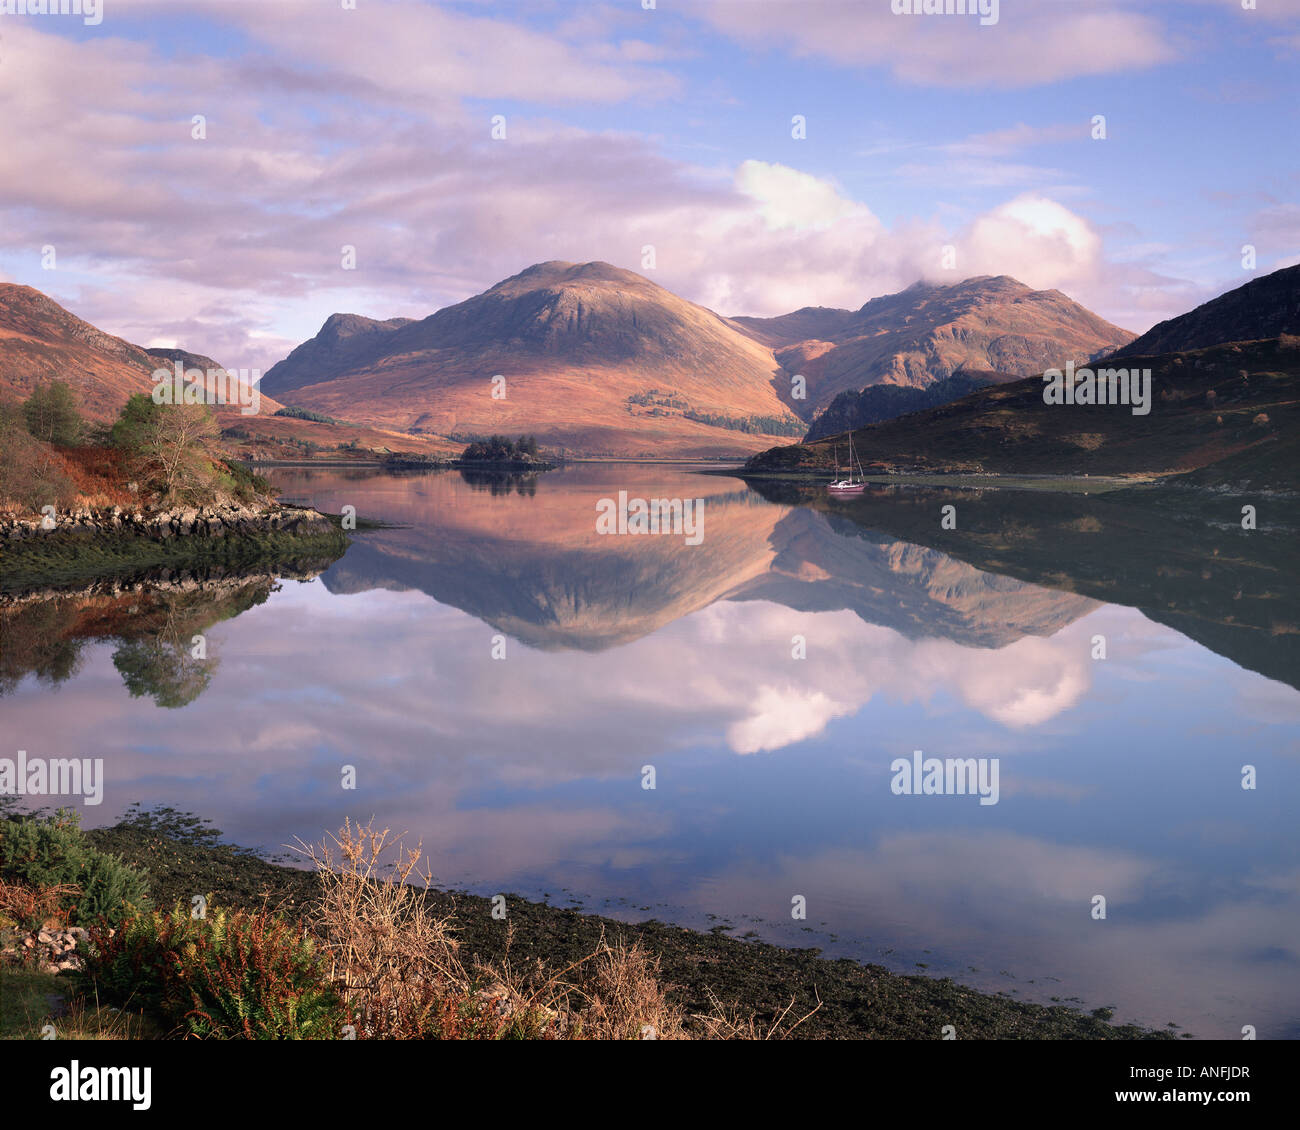 GB - Ecosse : le Loch Long Photo Stock